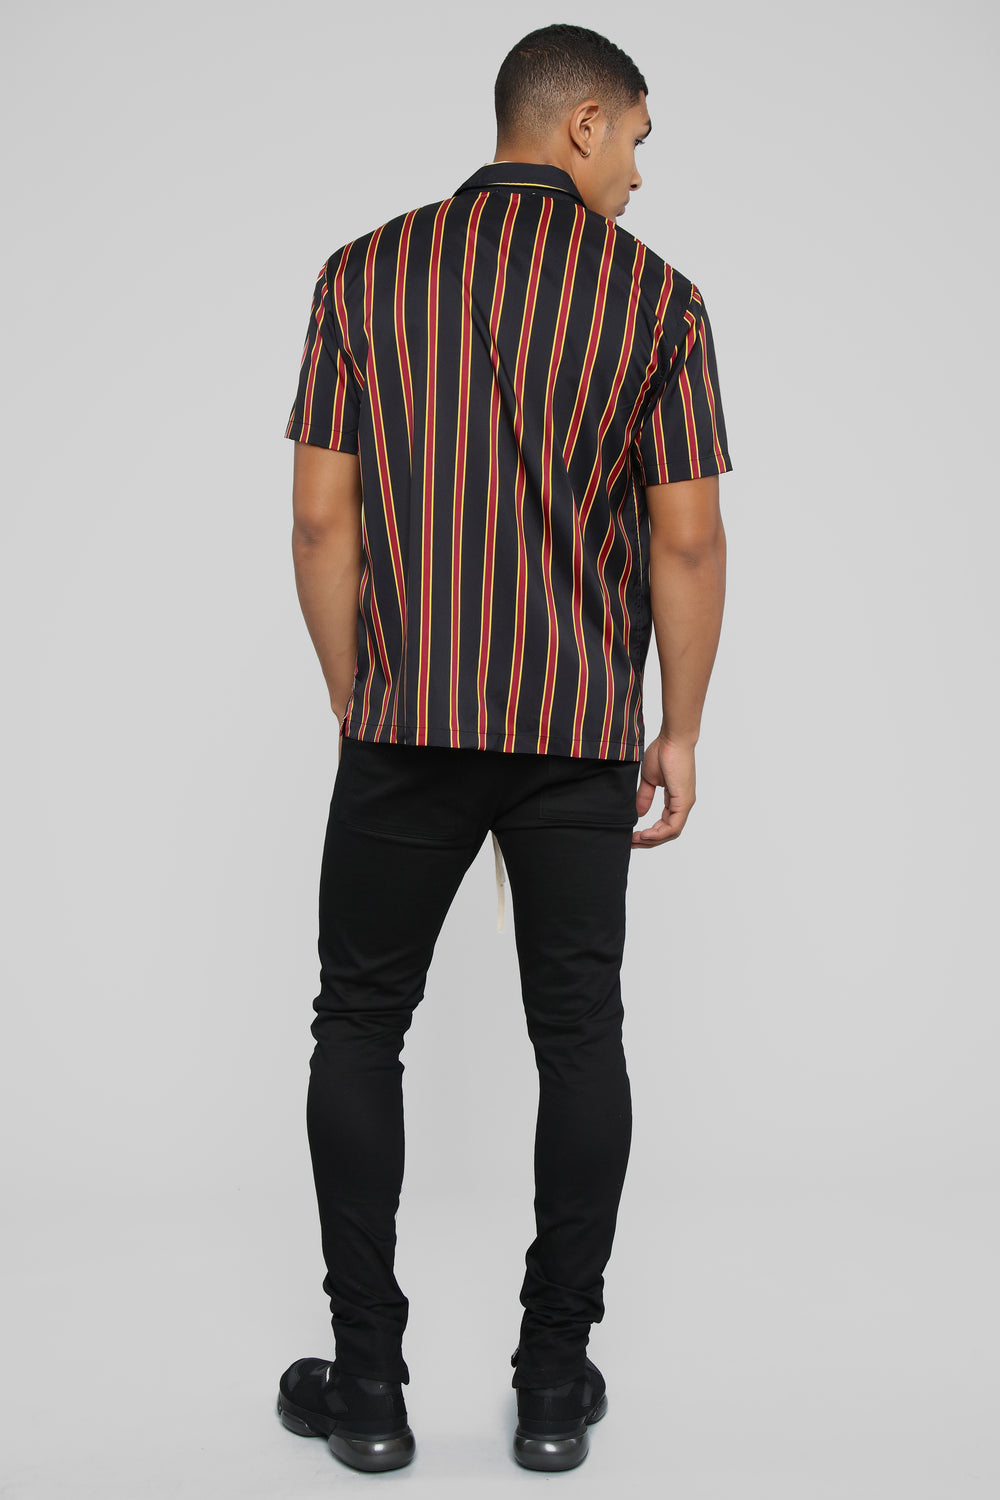 Julian Short Sleeve Woven Top - Black/Combo